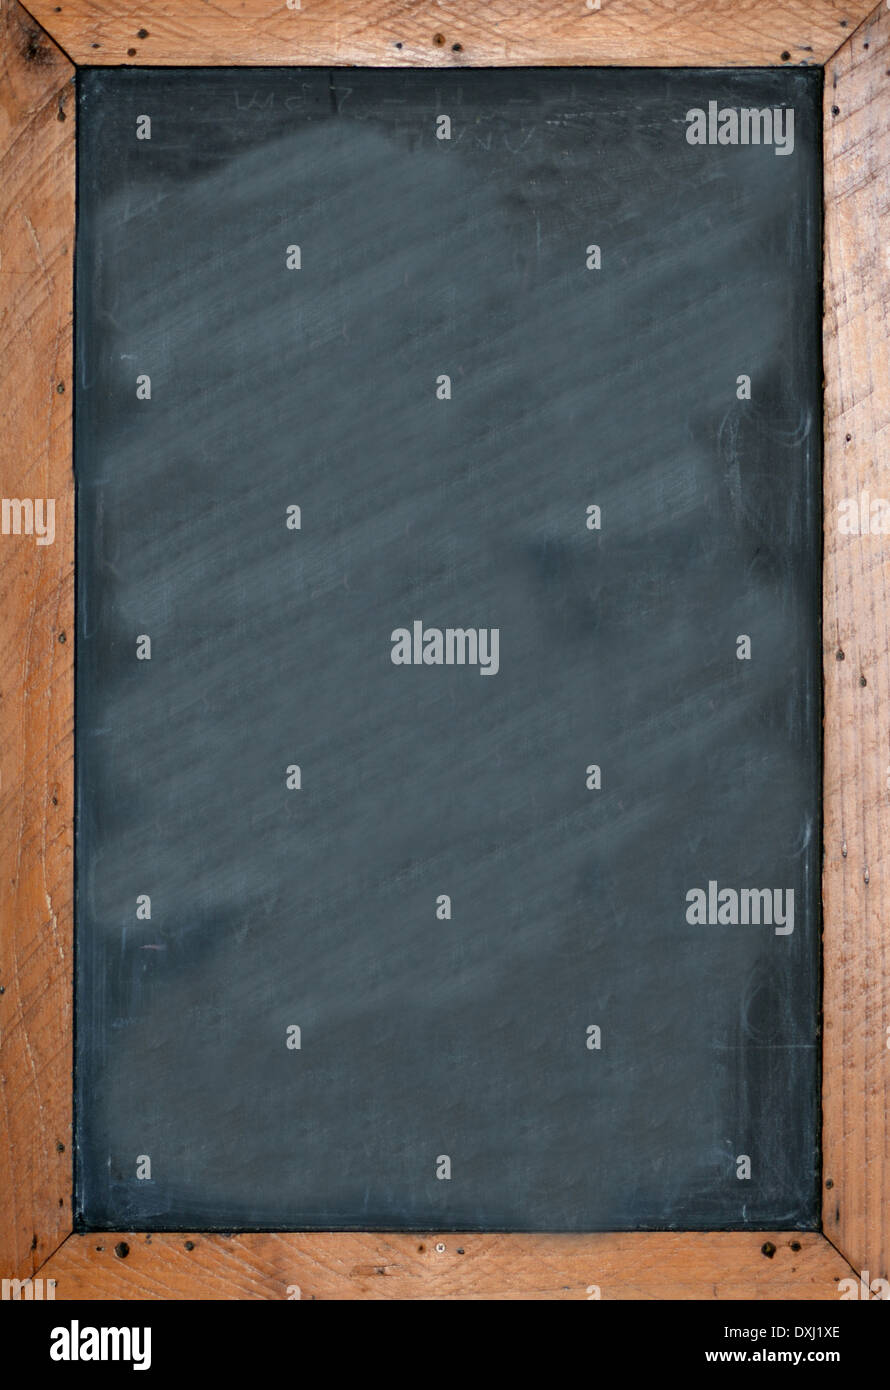 Blank chalkboard with brown wooben frame. Empty space for insertion and to add text. - Stock Image